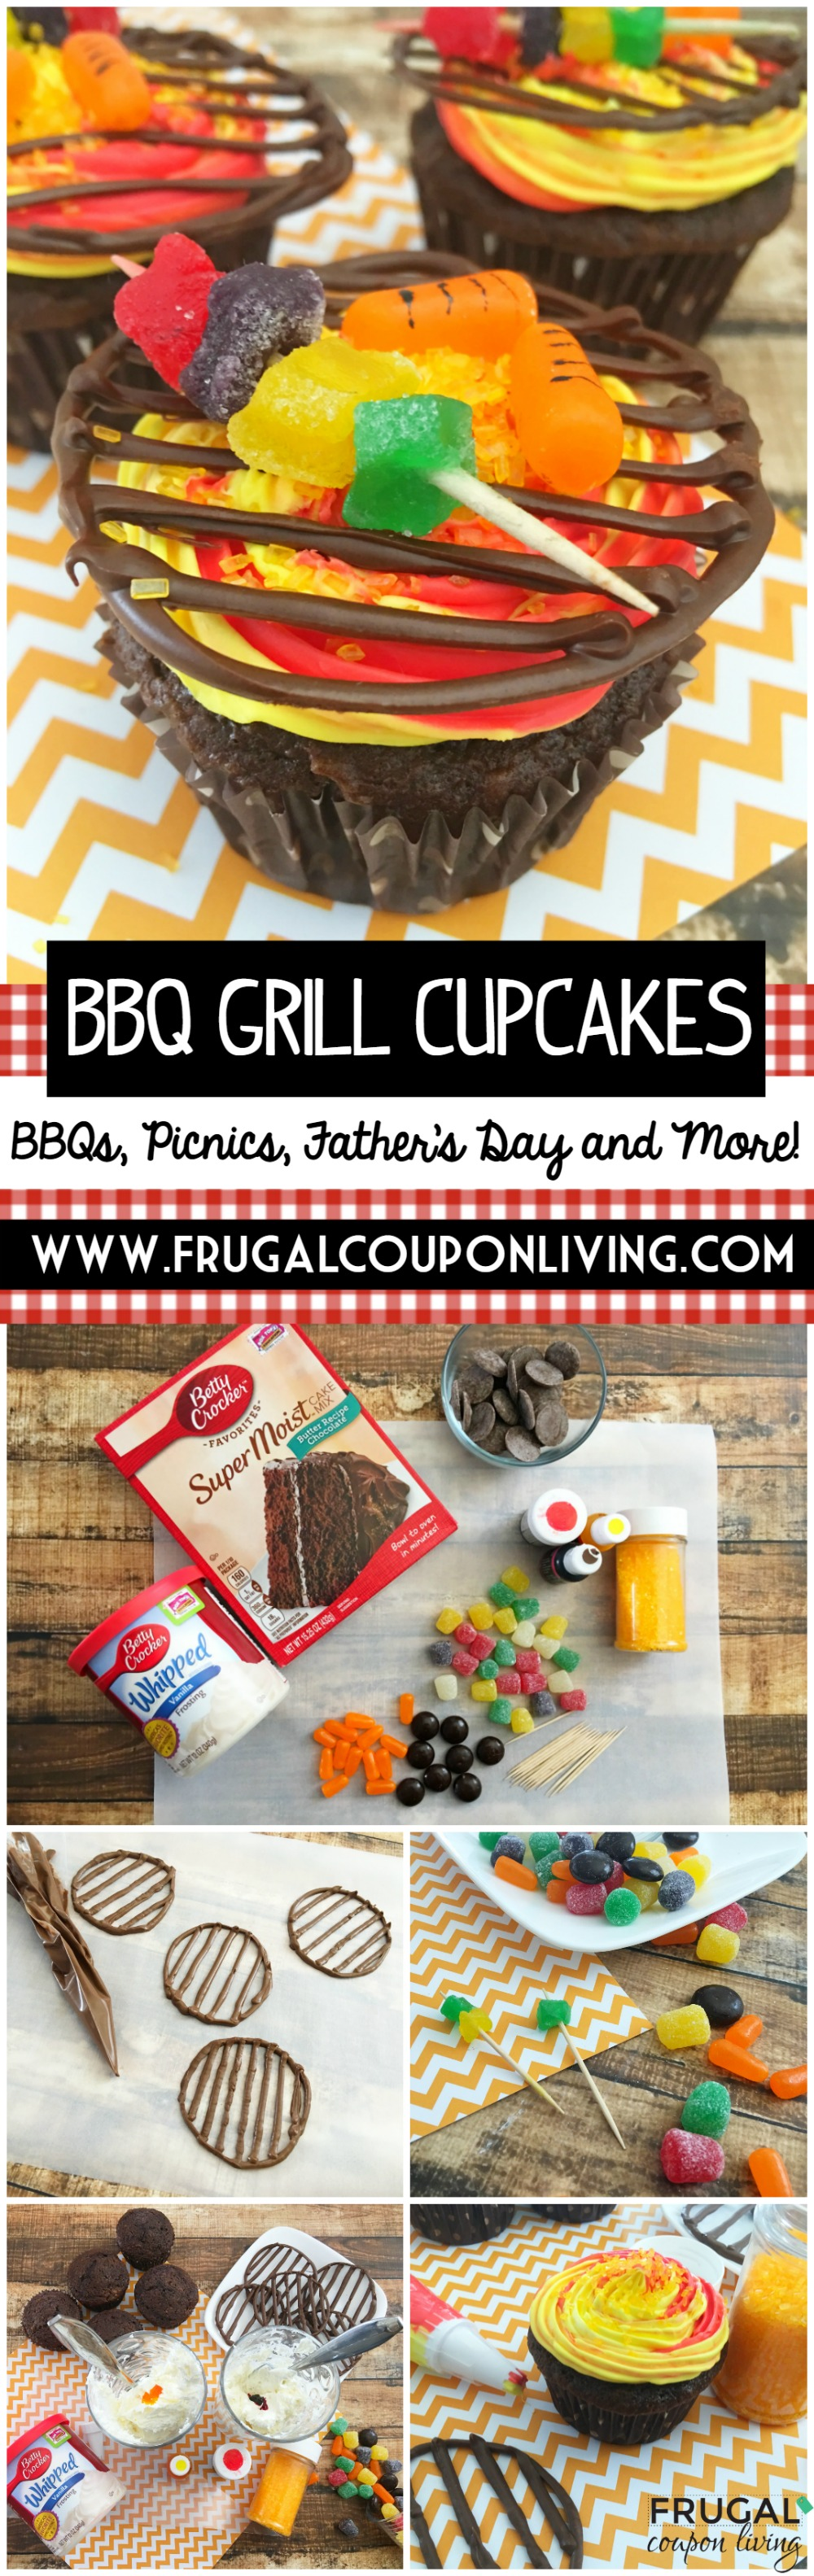 bbq-grill-cupcakes-long-collage-frugal-coupon-living